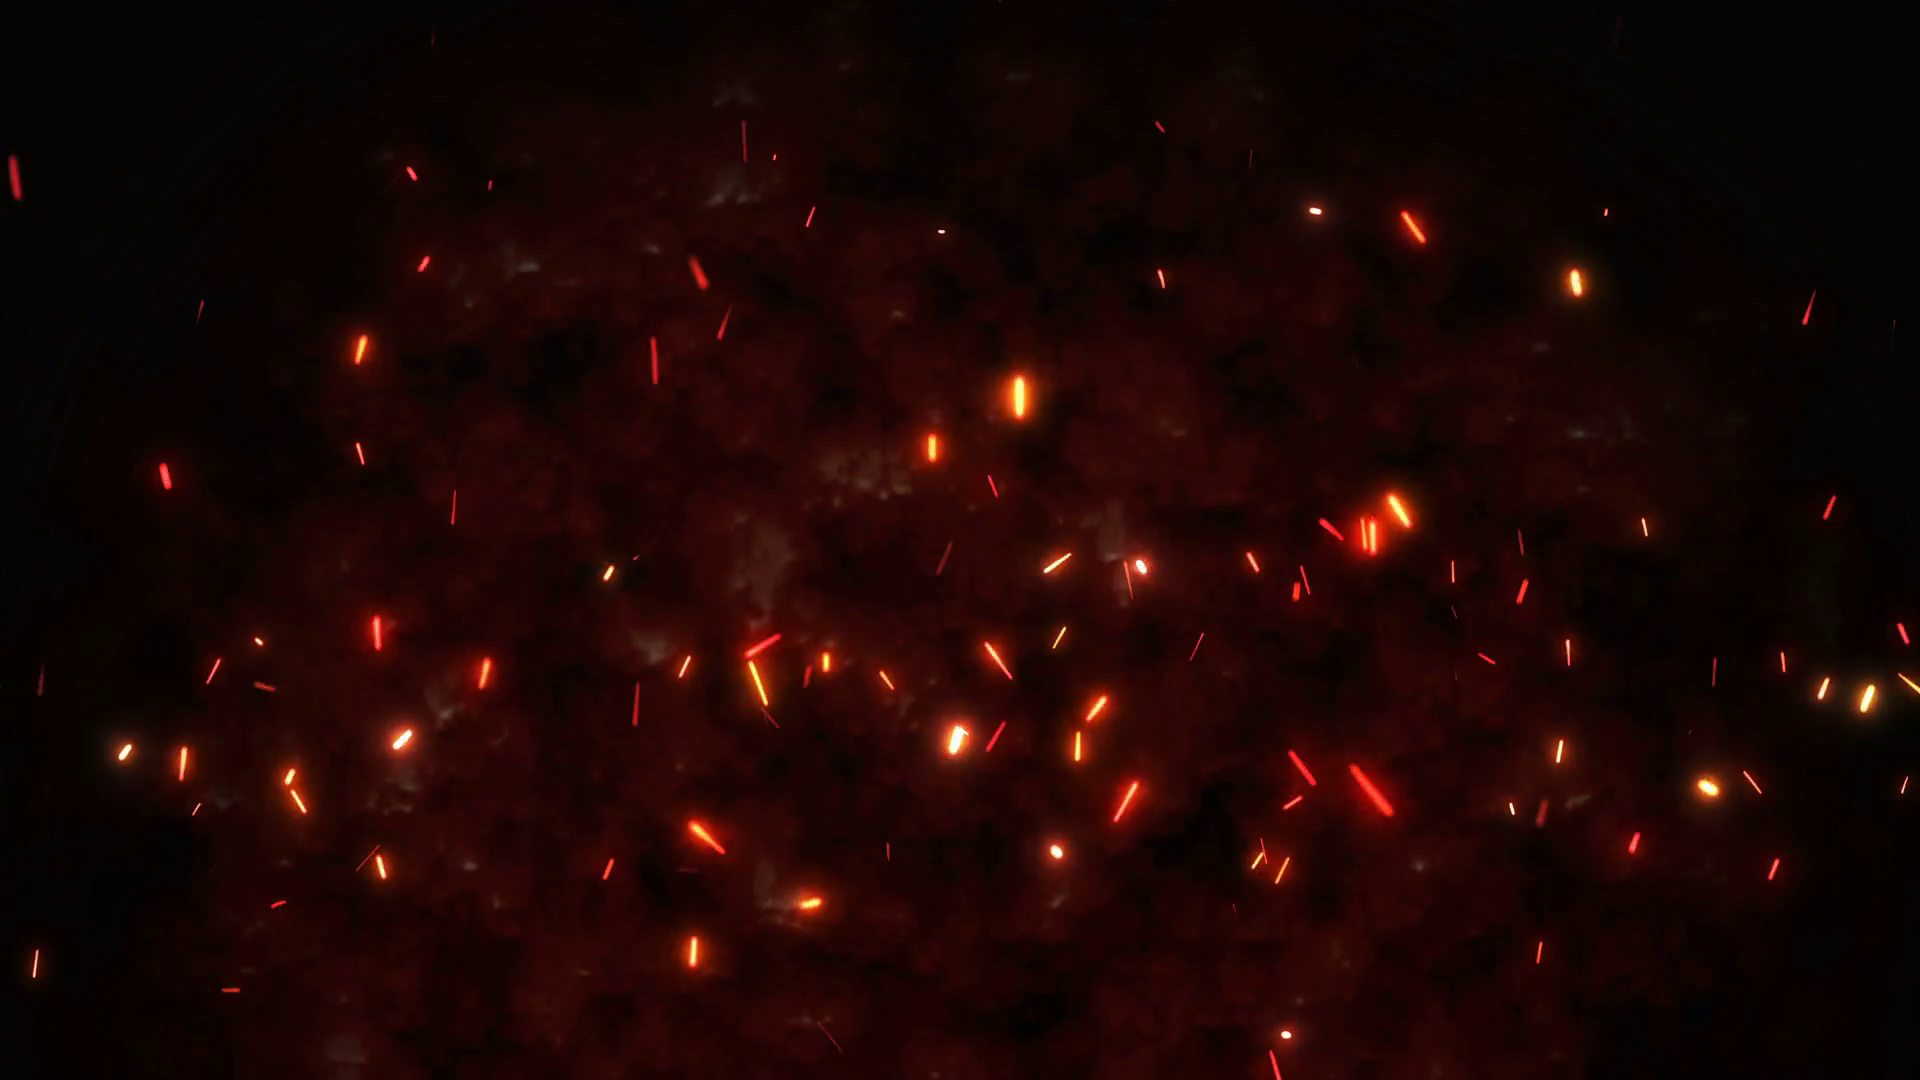 Fire Sparks Png (+).